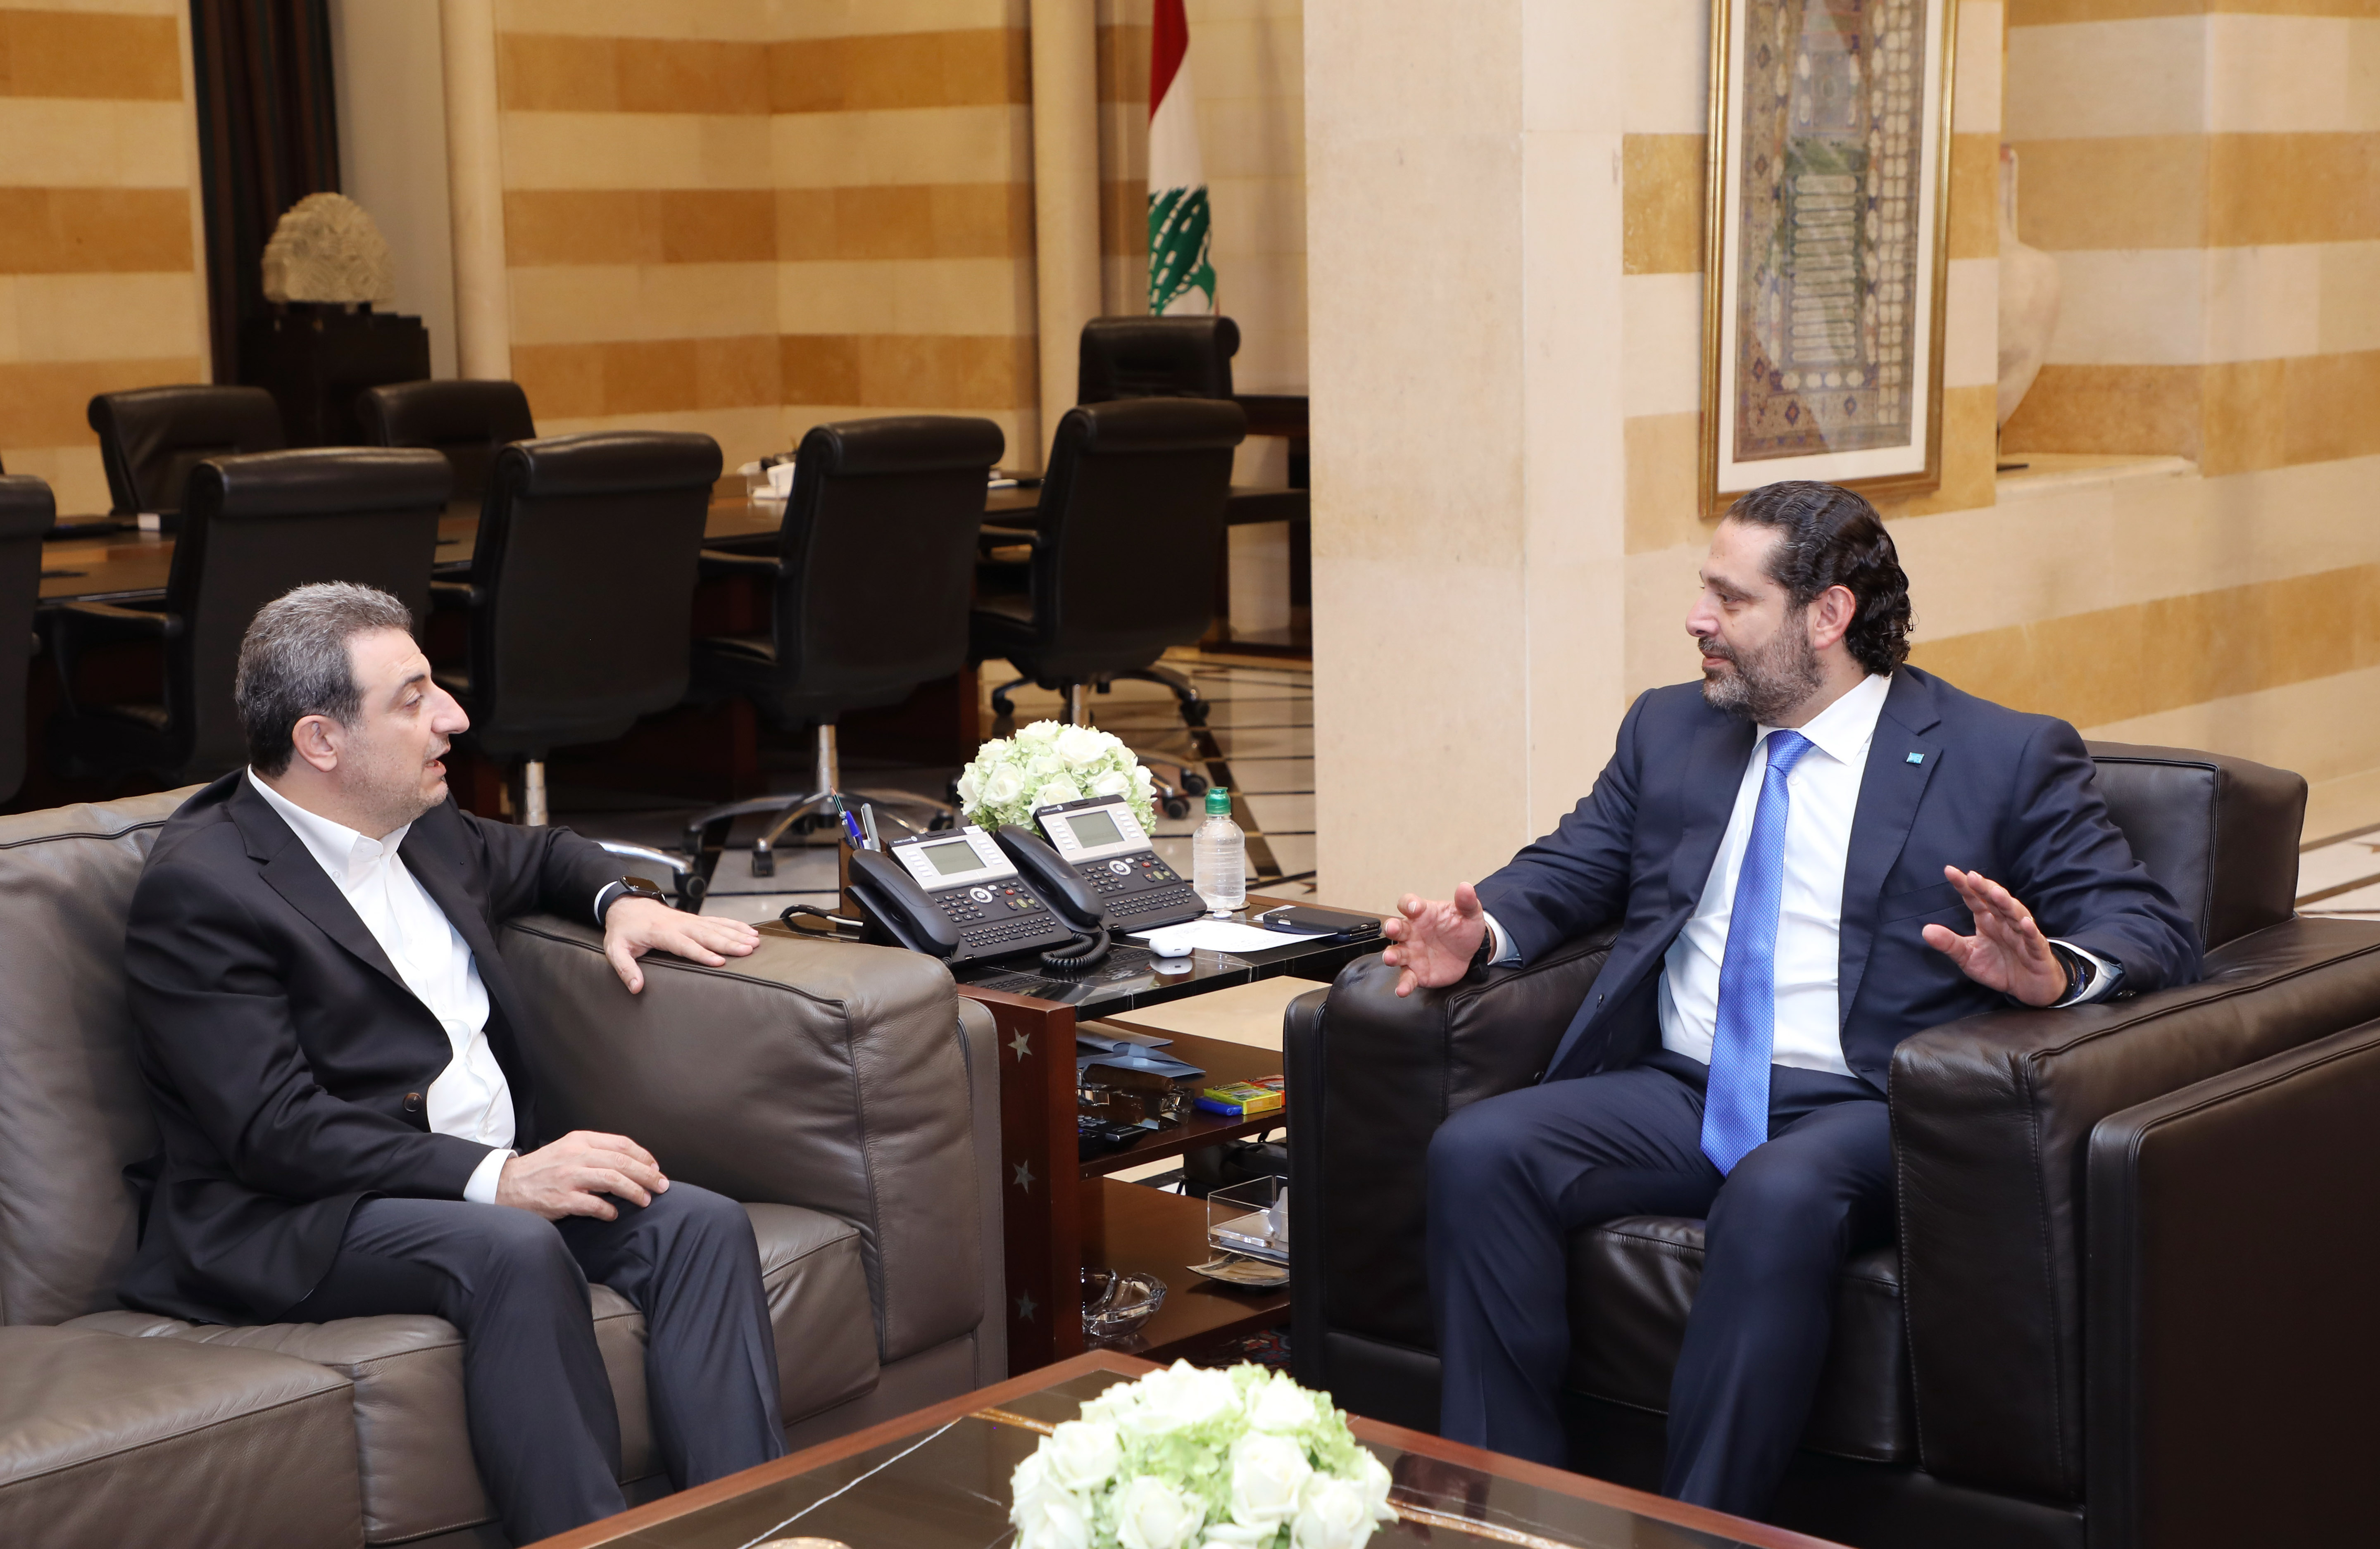 Pr Minister Saad Hariri meets Minister Wal Abou Faour